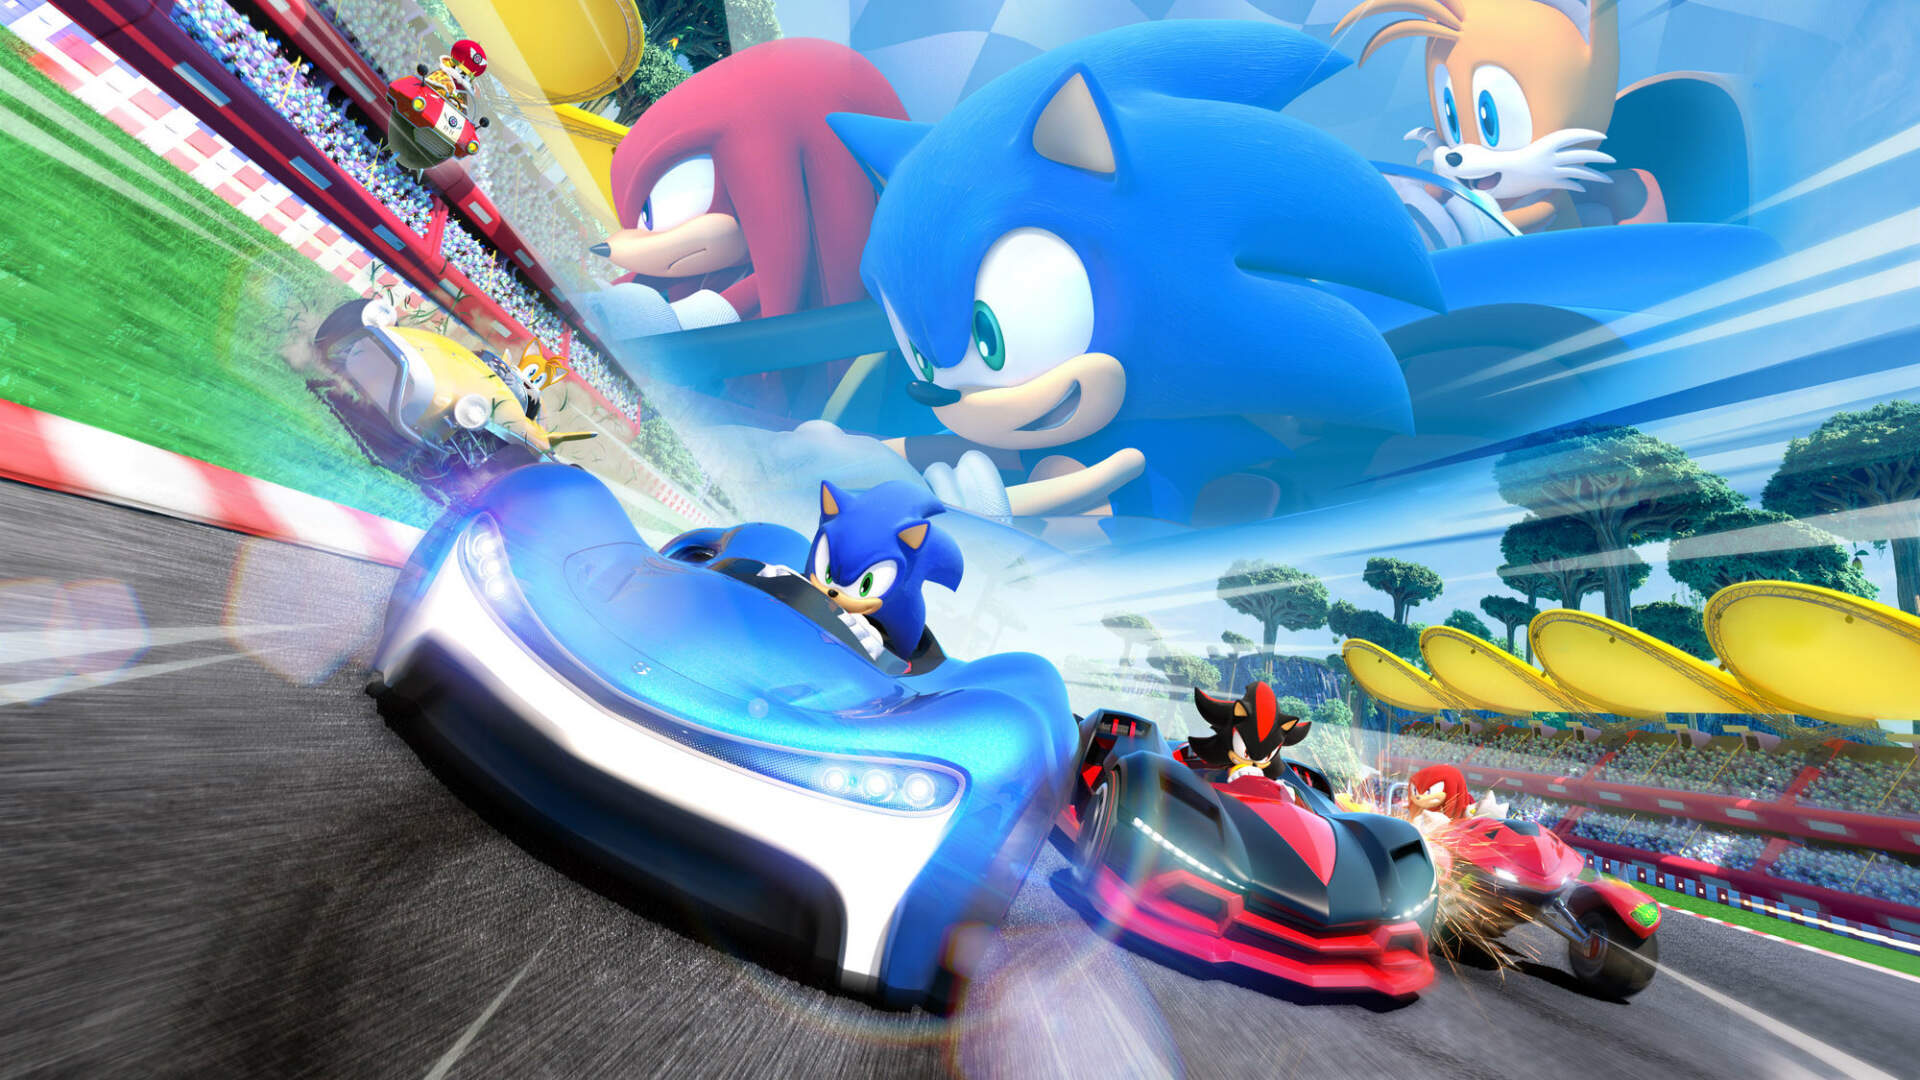 Team Sonic Racing Mod Pods - How to Earn Credits and Open Mod Pods